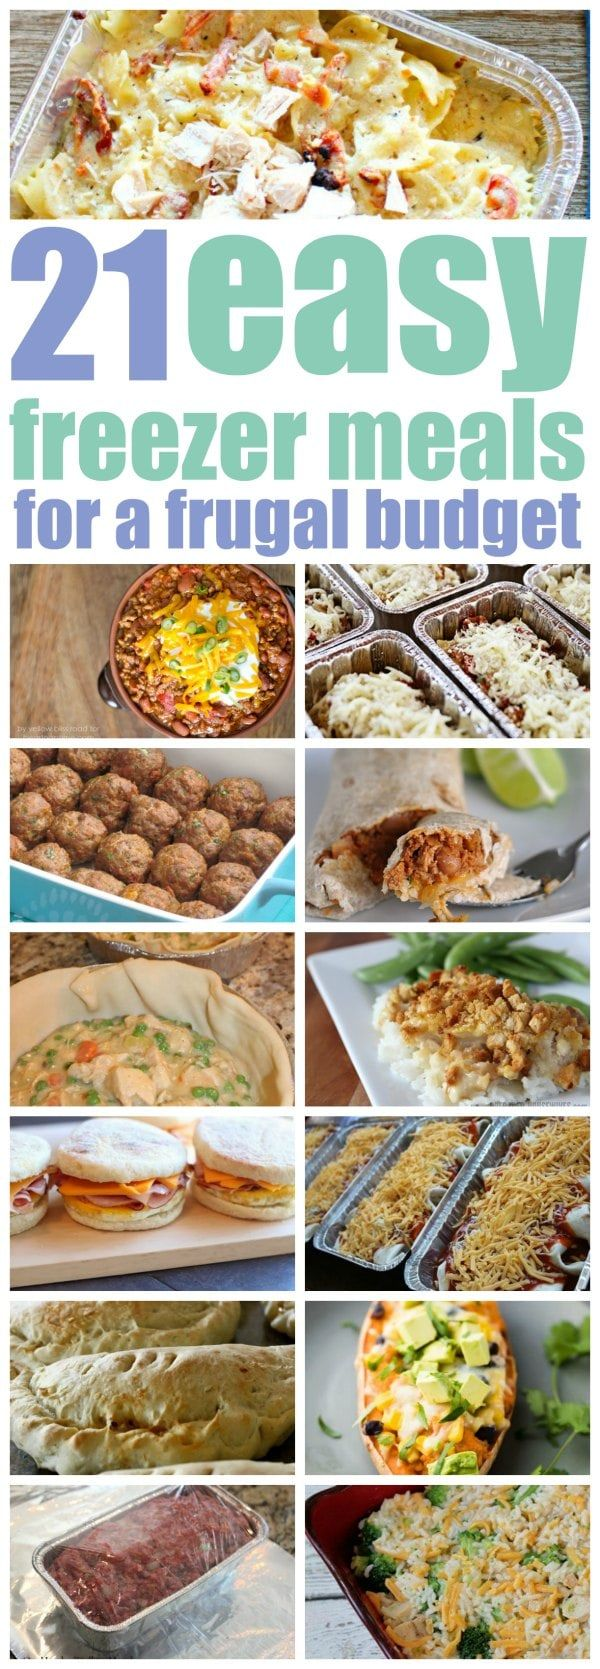 Easy Freezer Meals for a Frugal Budget is part of Freezer meal prep - These easy freezer meals are guaranteed to become fast family favourites  21 recipes that are easy to make, freeze and reheat when you need them